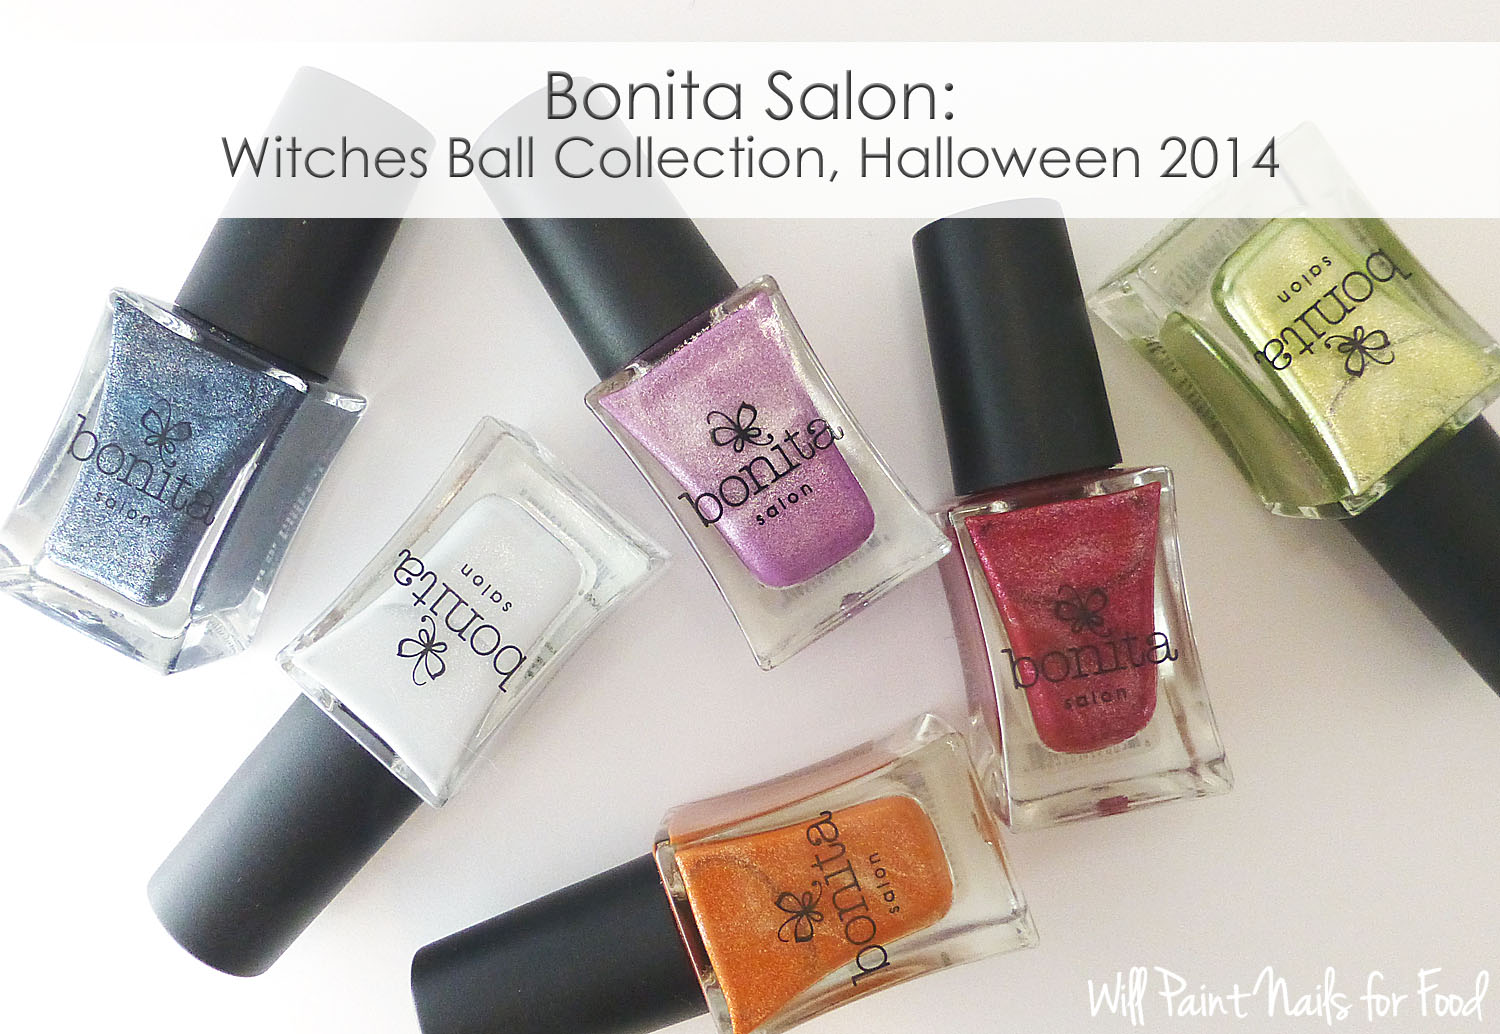 Bonita Salon Witches Ball Collection Halloween 2014